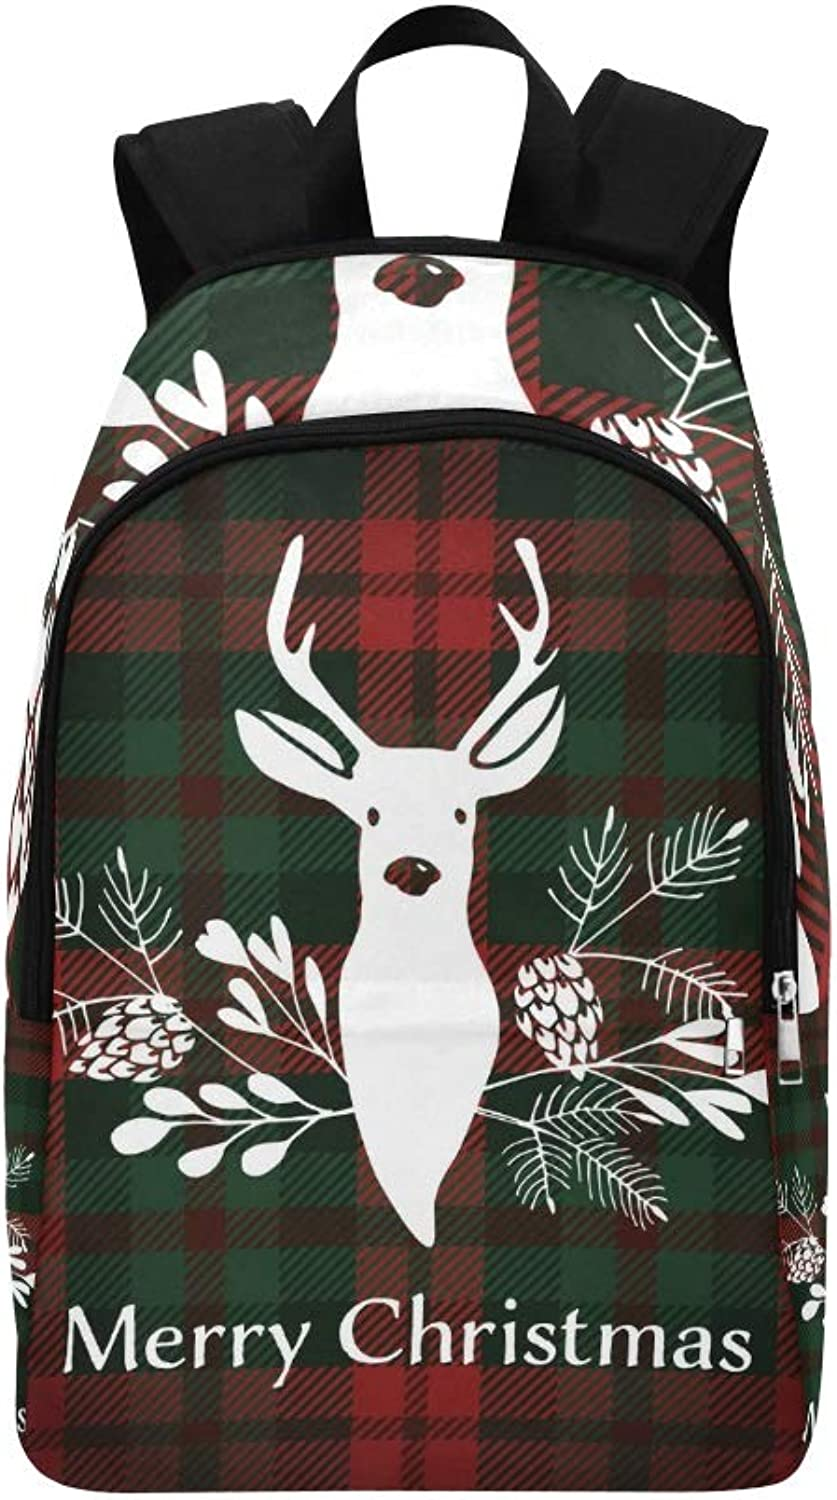 Merry Christmas Greeting Card Invitation Reindeer Casual Daypack Travel Bag College School Backpack for Mens and Women